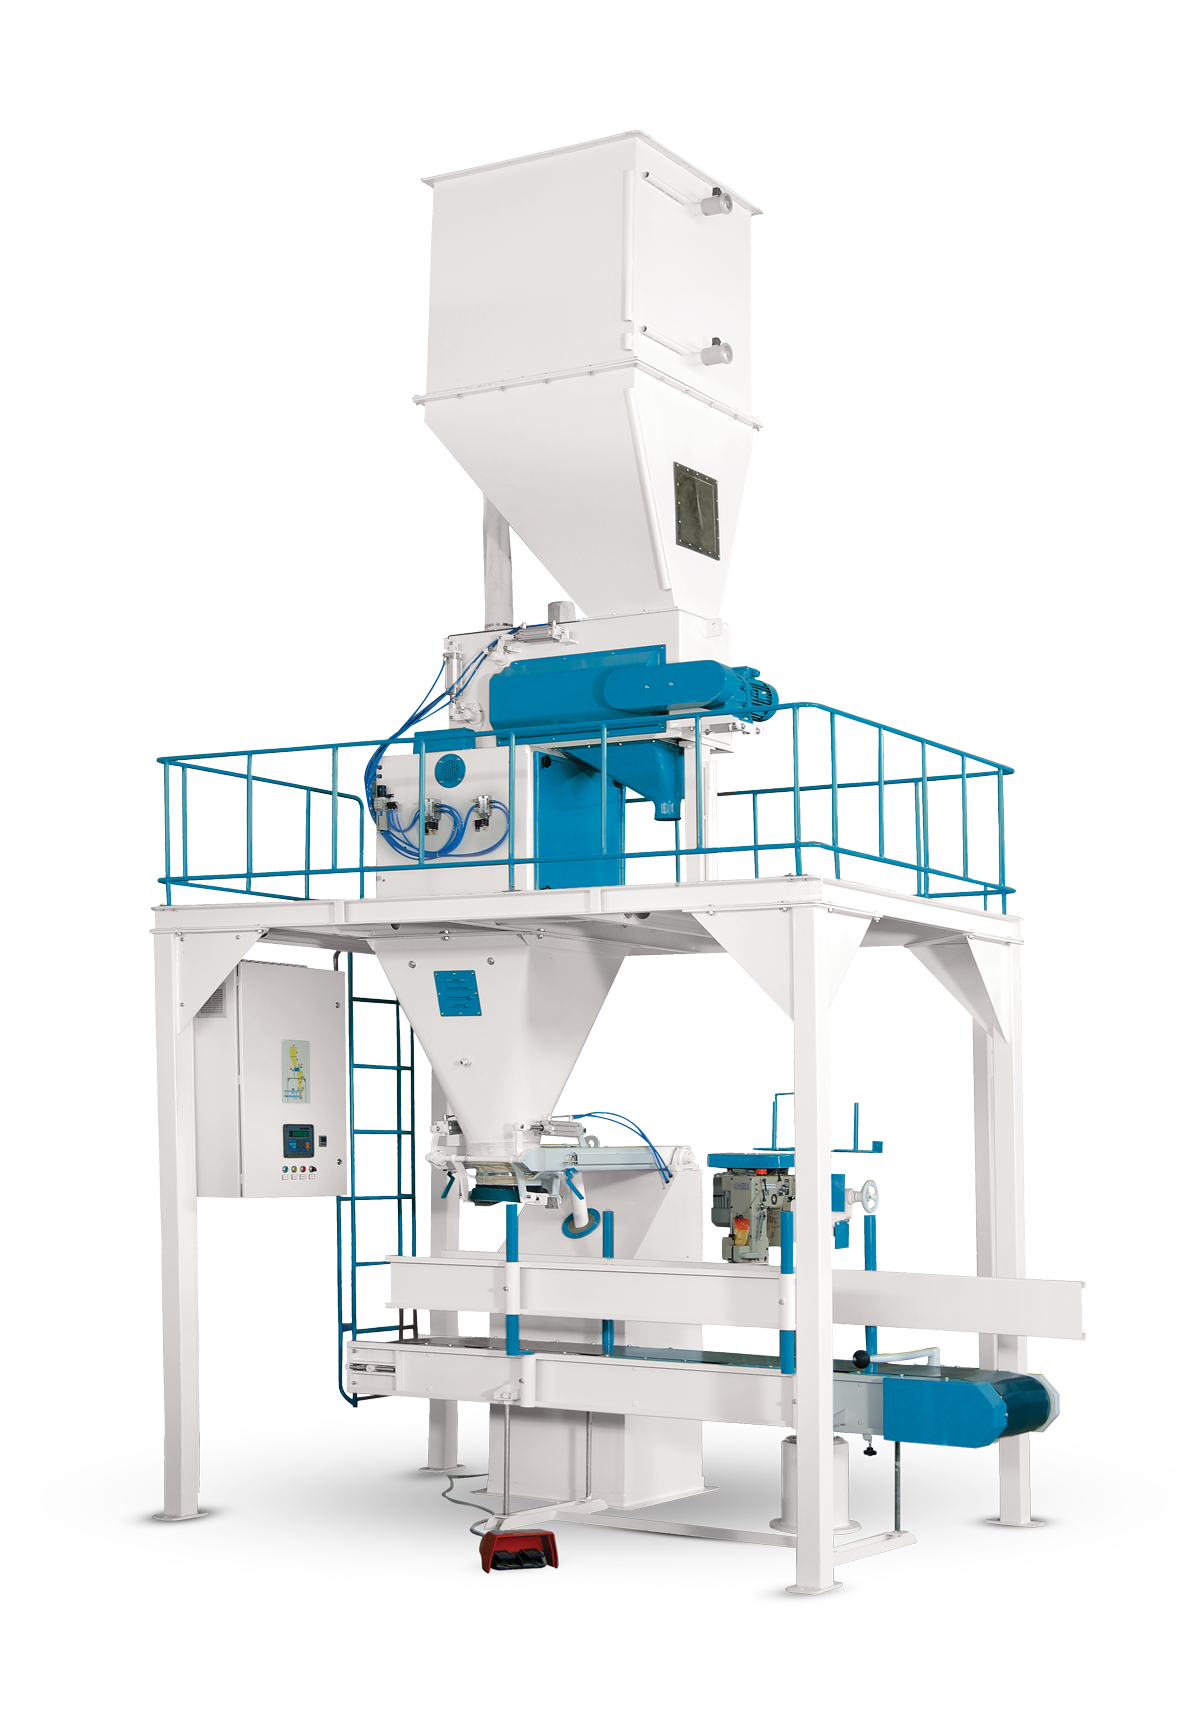 Flour Bagging Machine System With Single Weigh Hopper & Single Station 5/10 Kg7